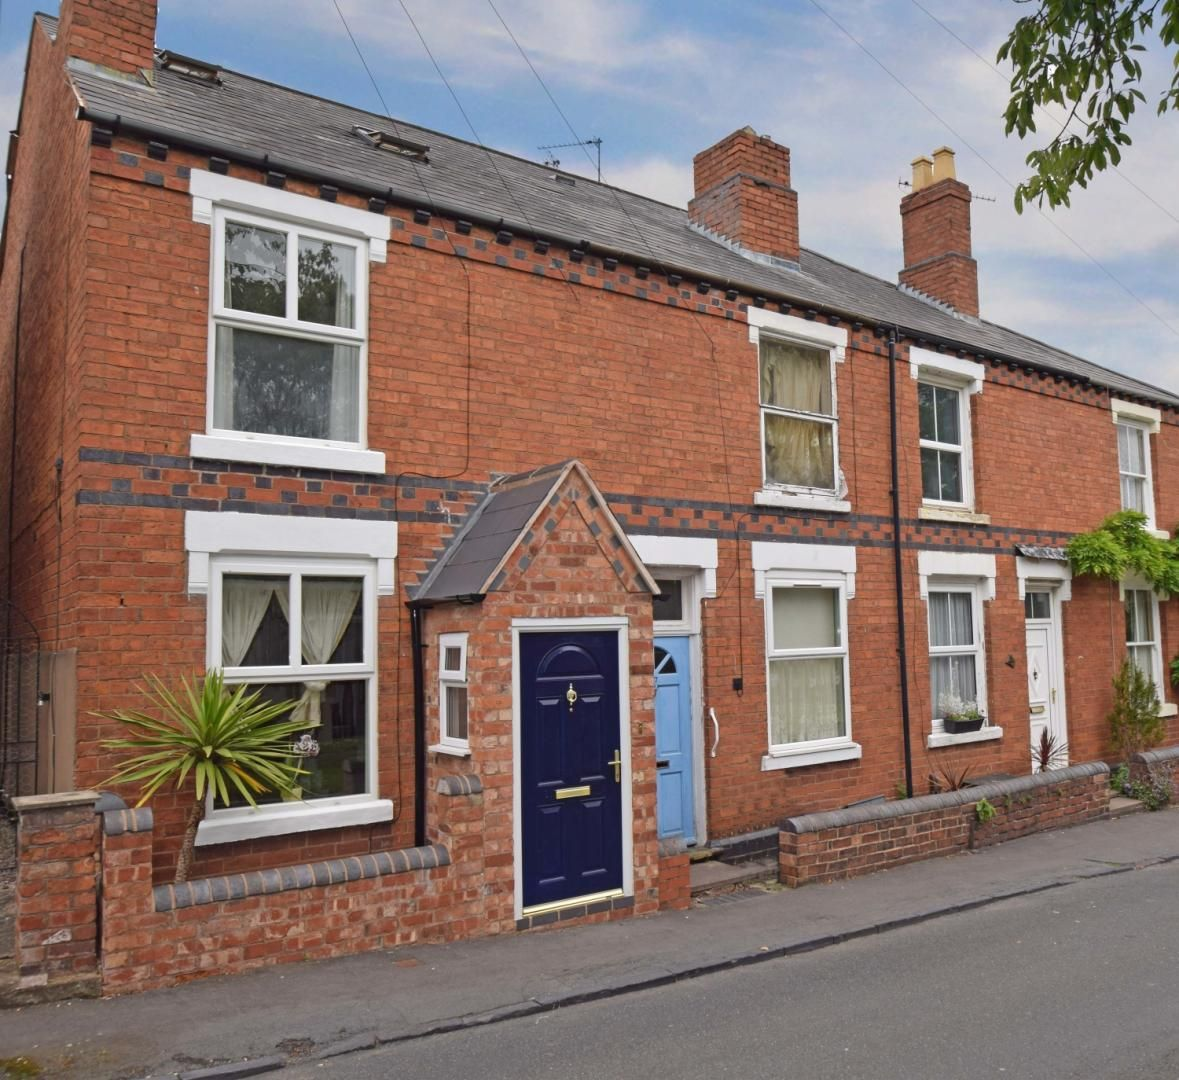 2 bed terraced for sale in Hall Street, Oldswinford 1